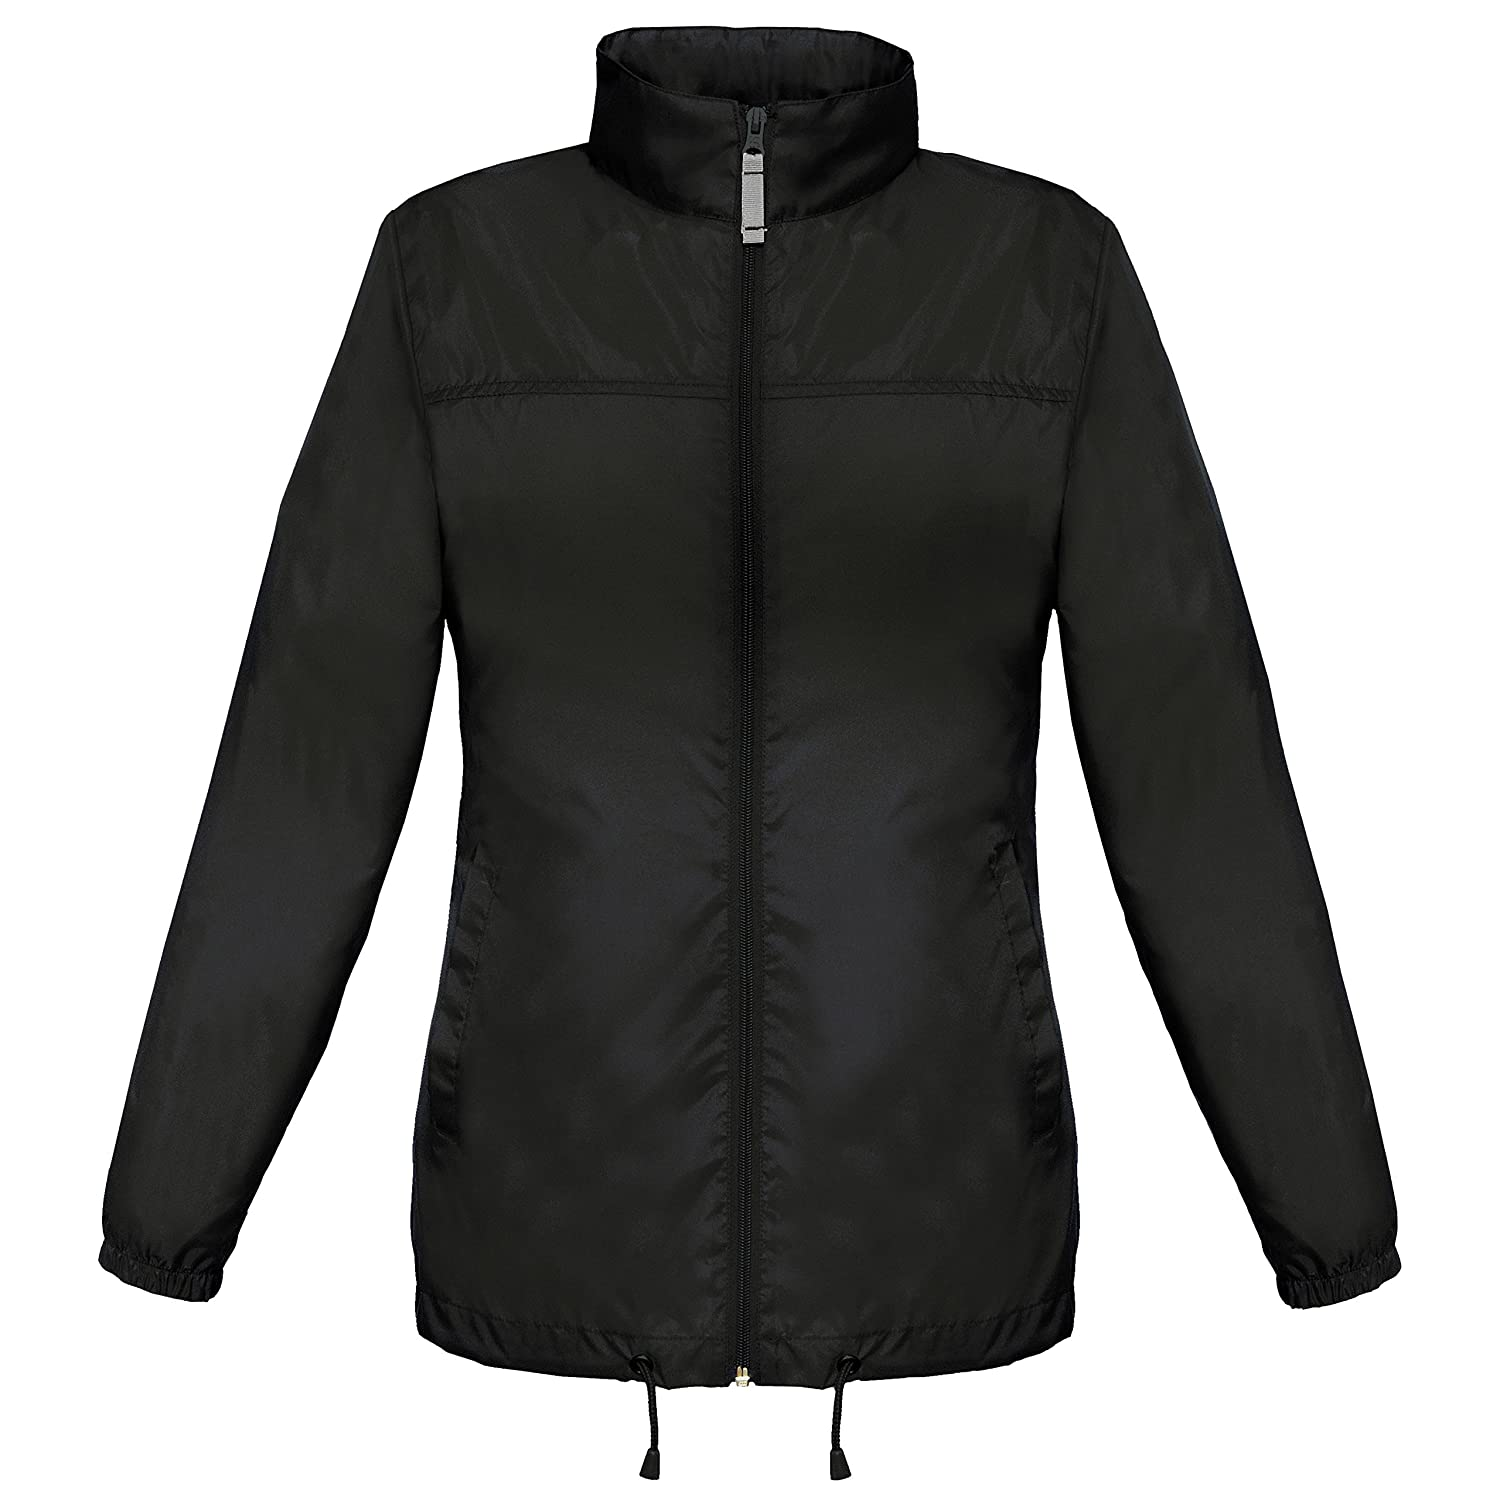 Women's Windbreaker by B and C Collection - 13 Colours Available